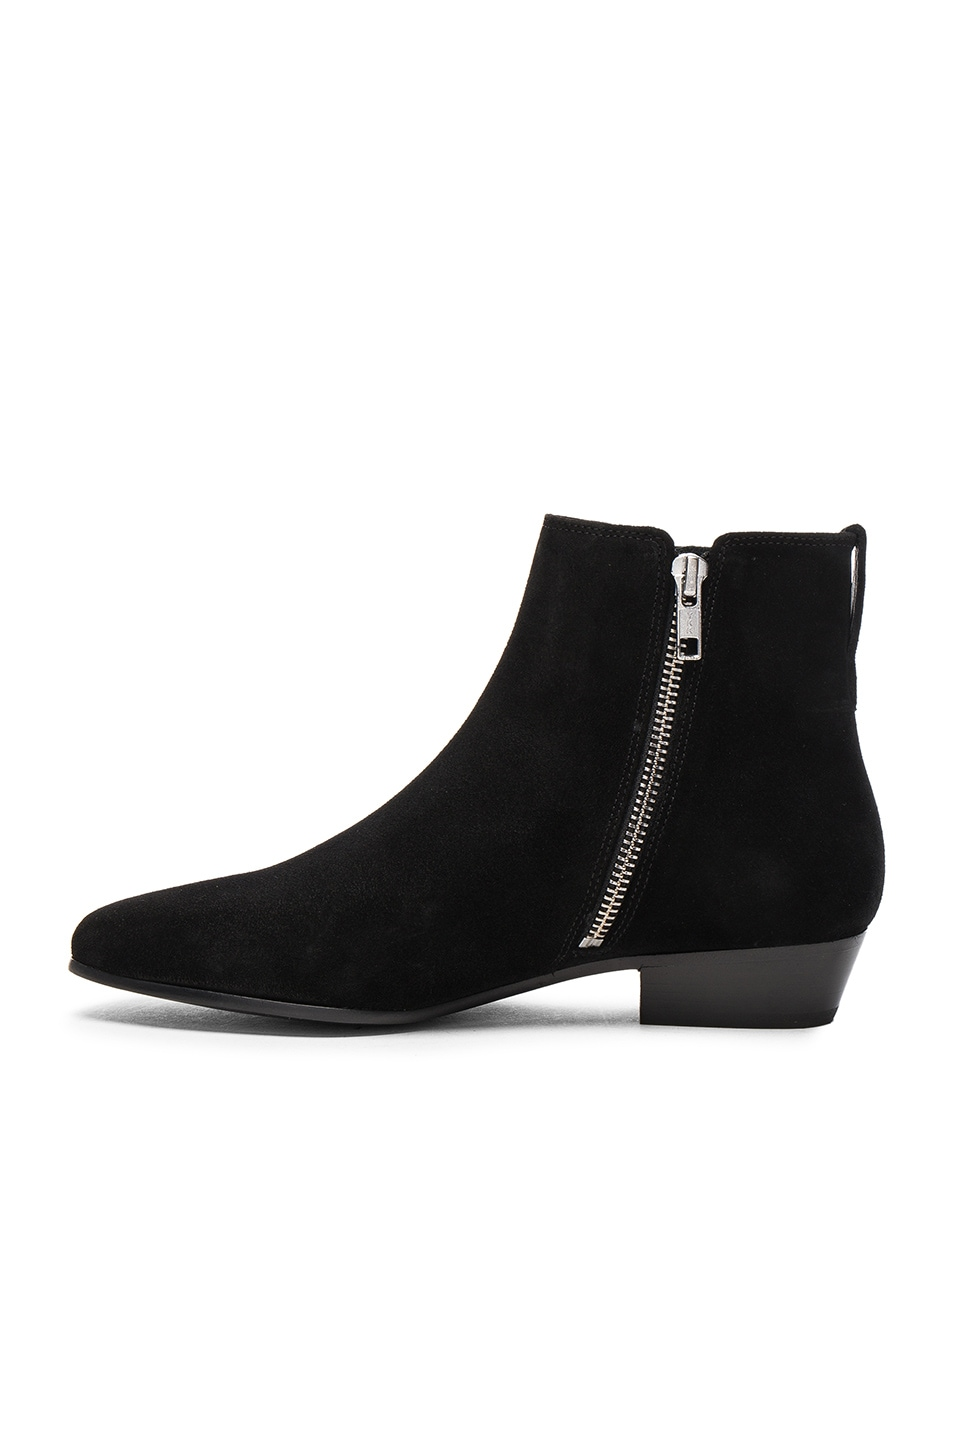 Image 5 of Isabel Marant Etoile Patsha Velvet Booties in Black